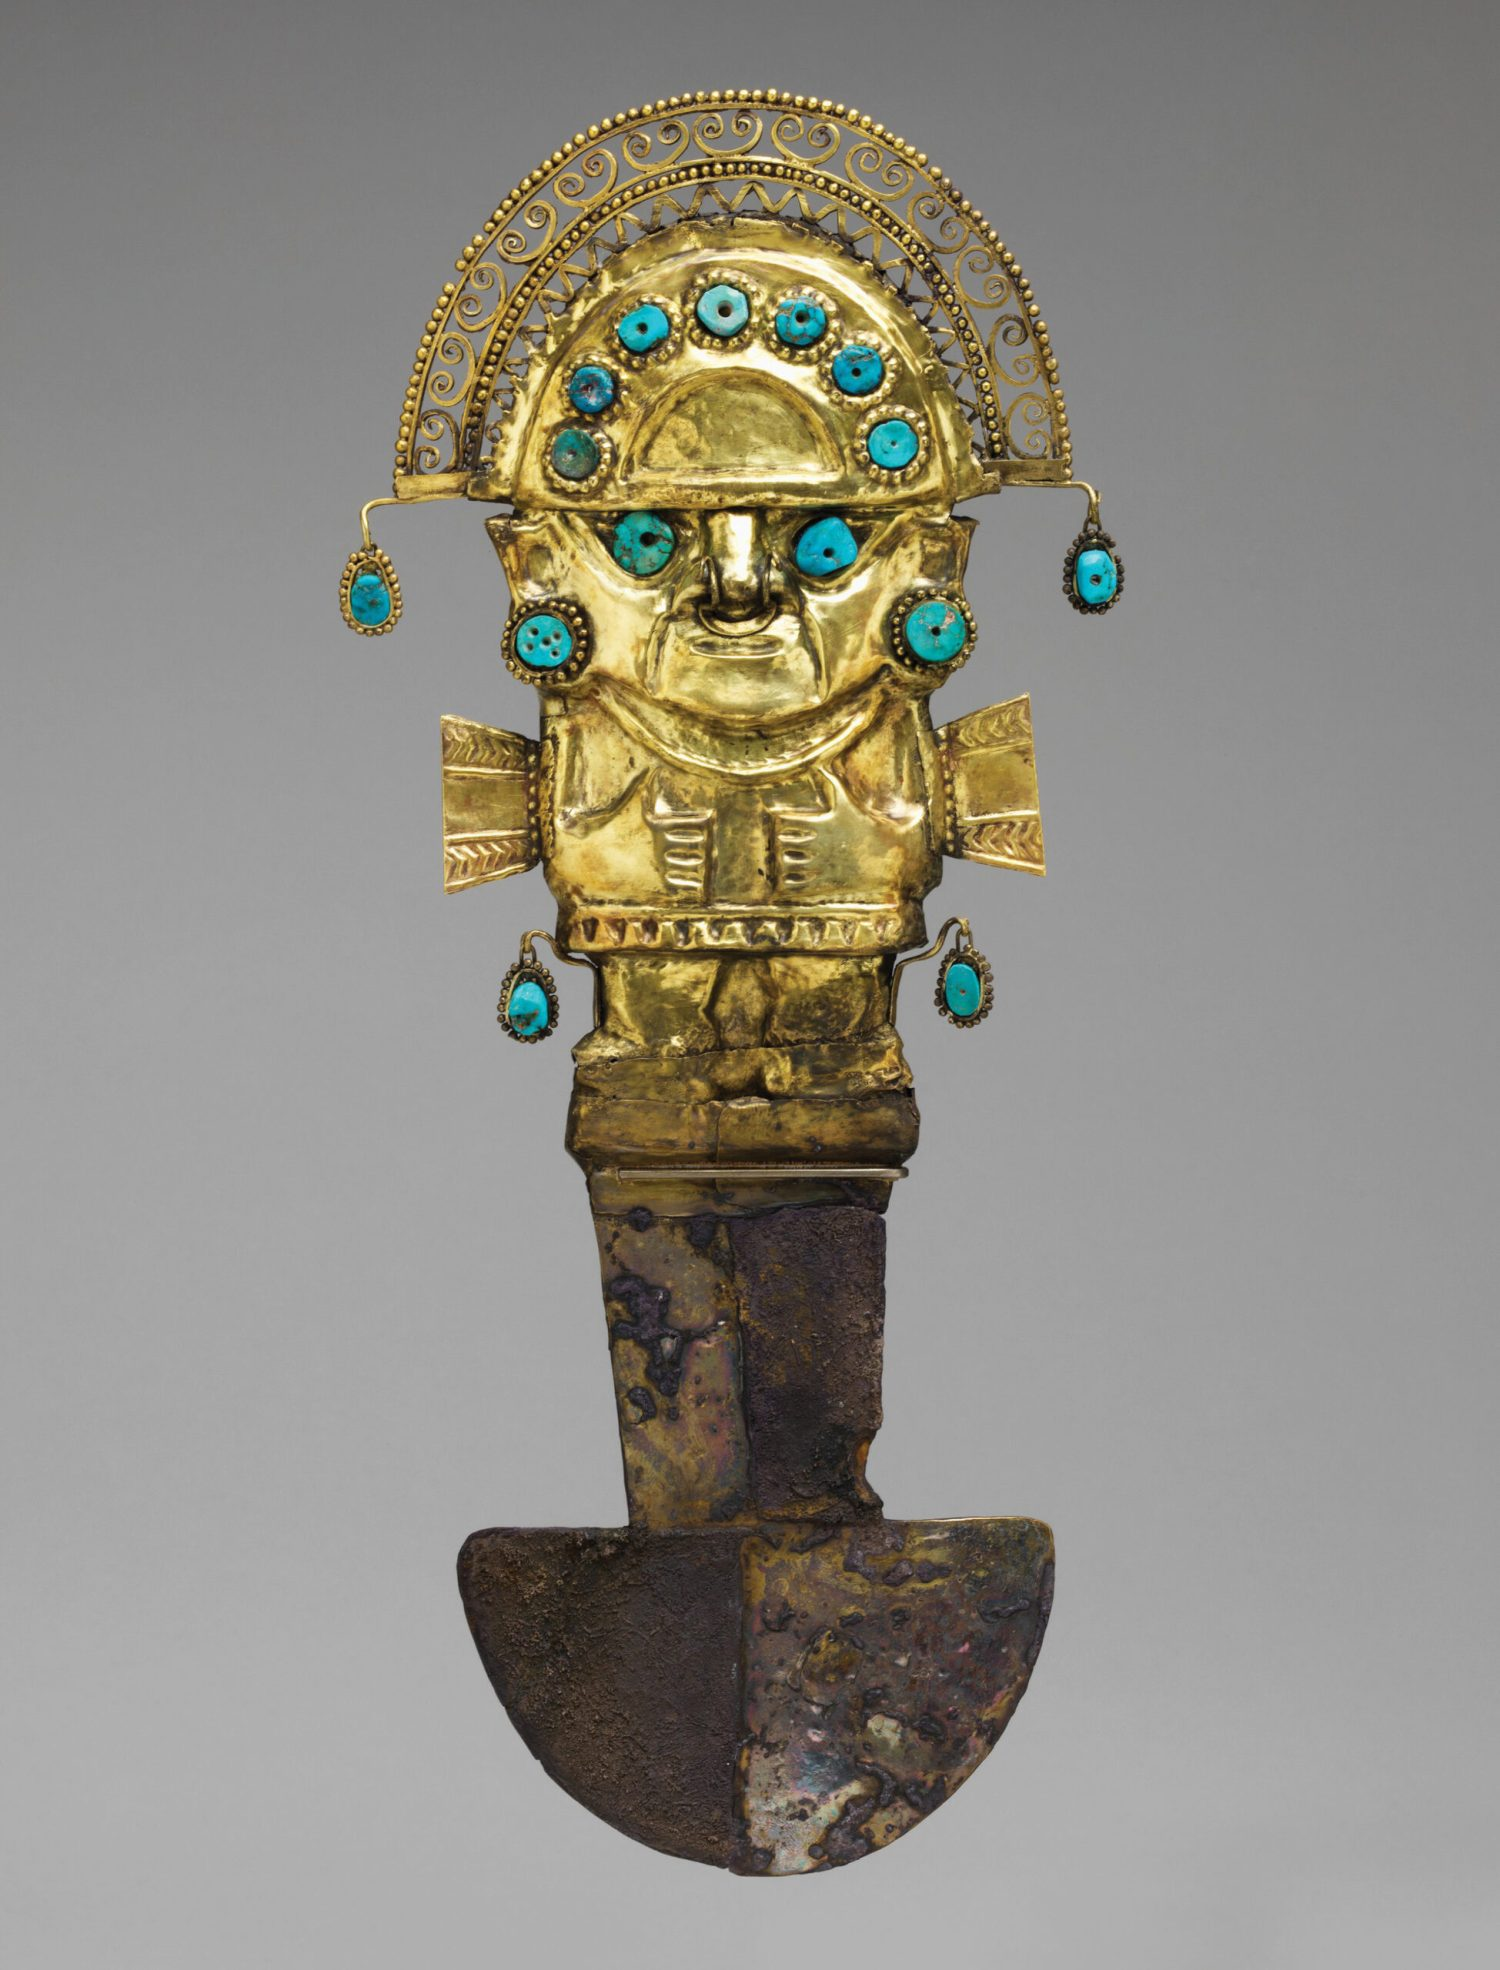 below A Sicán ceremonial knife, or tumi, from the north coast of Peru. Gold, silver, and turquoise, 10th-12th century AD. Size: 36.2 x 15.9 x 4.1cm opposite Tiwanaku ear ornaments, from coastal Peru or highland Bolivia. Shell, stone, silver, and copper, AD 400-800. Size: 6.5cm diameter